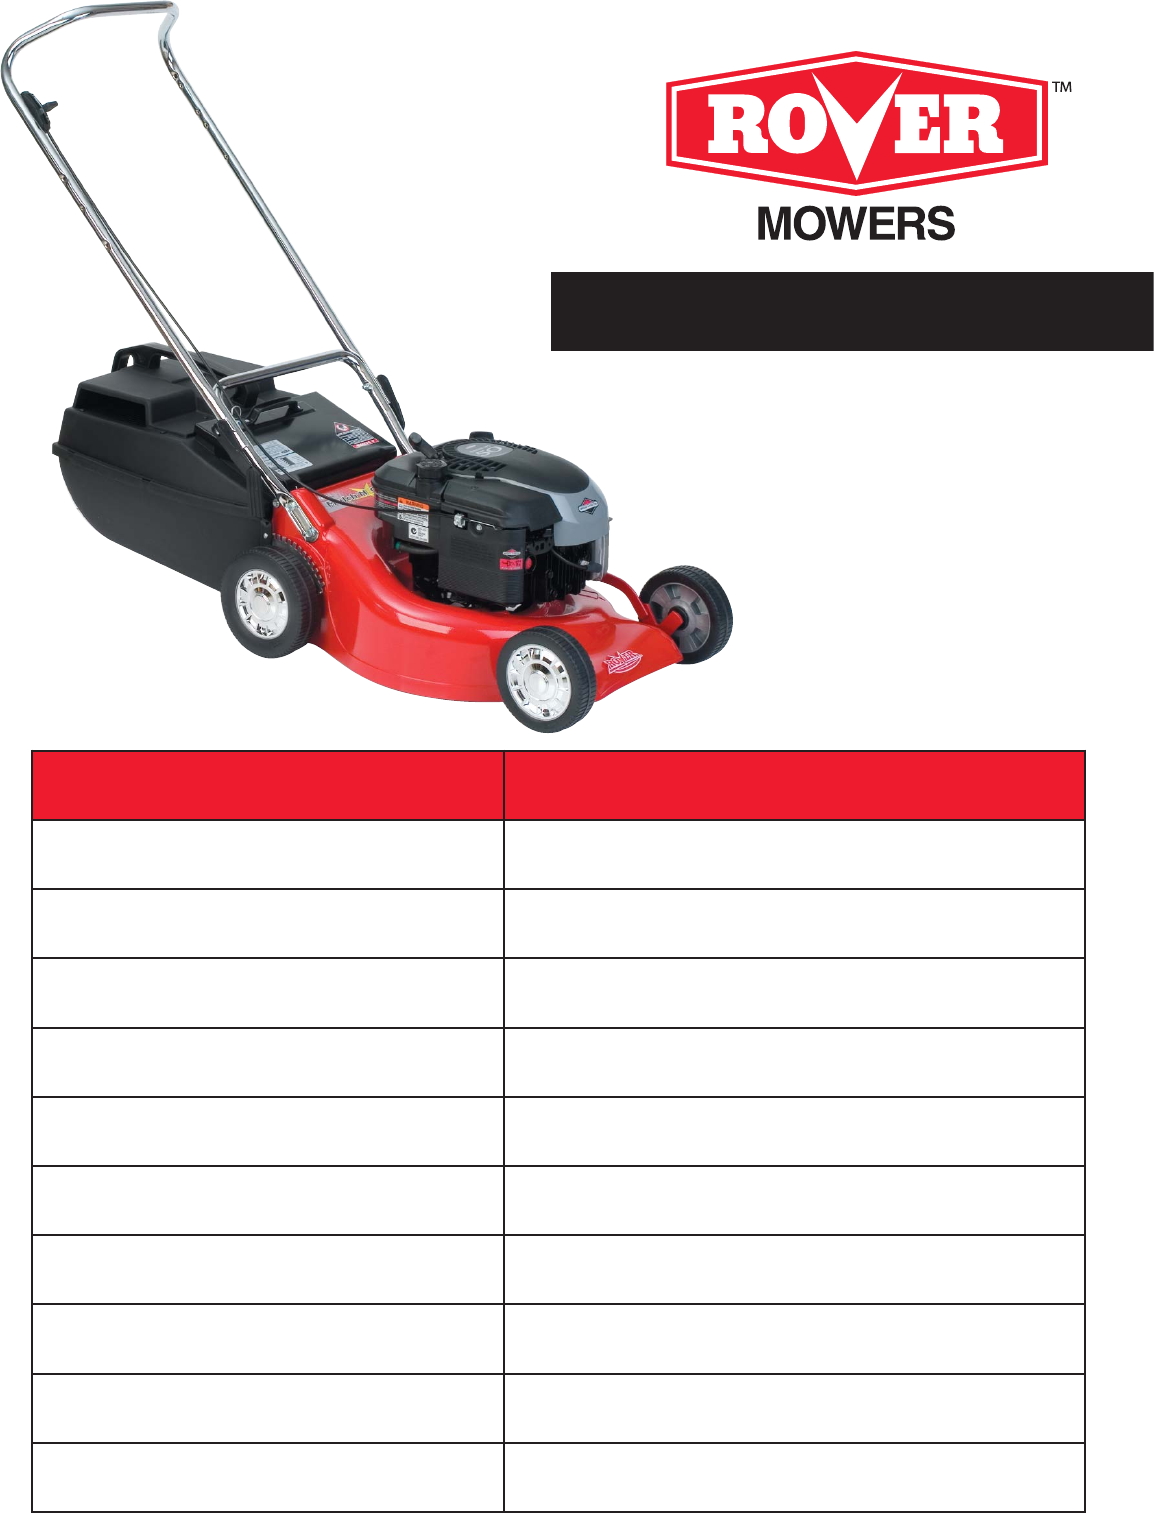 rover lawn mower 35m92 user guide manualsonline com rh lawnandgarden manualsonline com NASA Rover rover 45 lawn mower repair manual